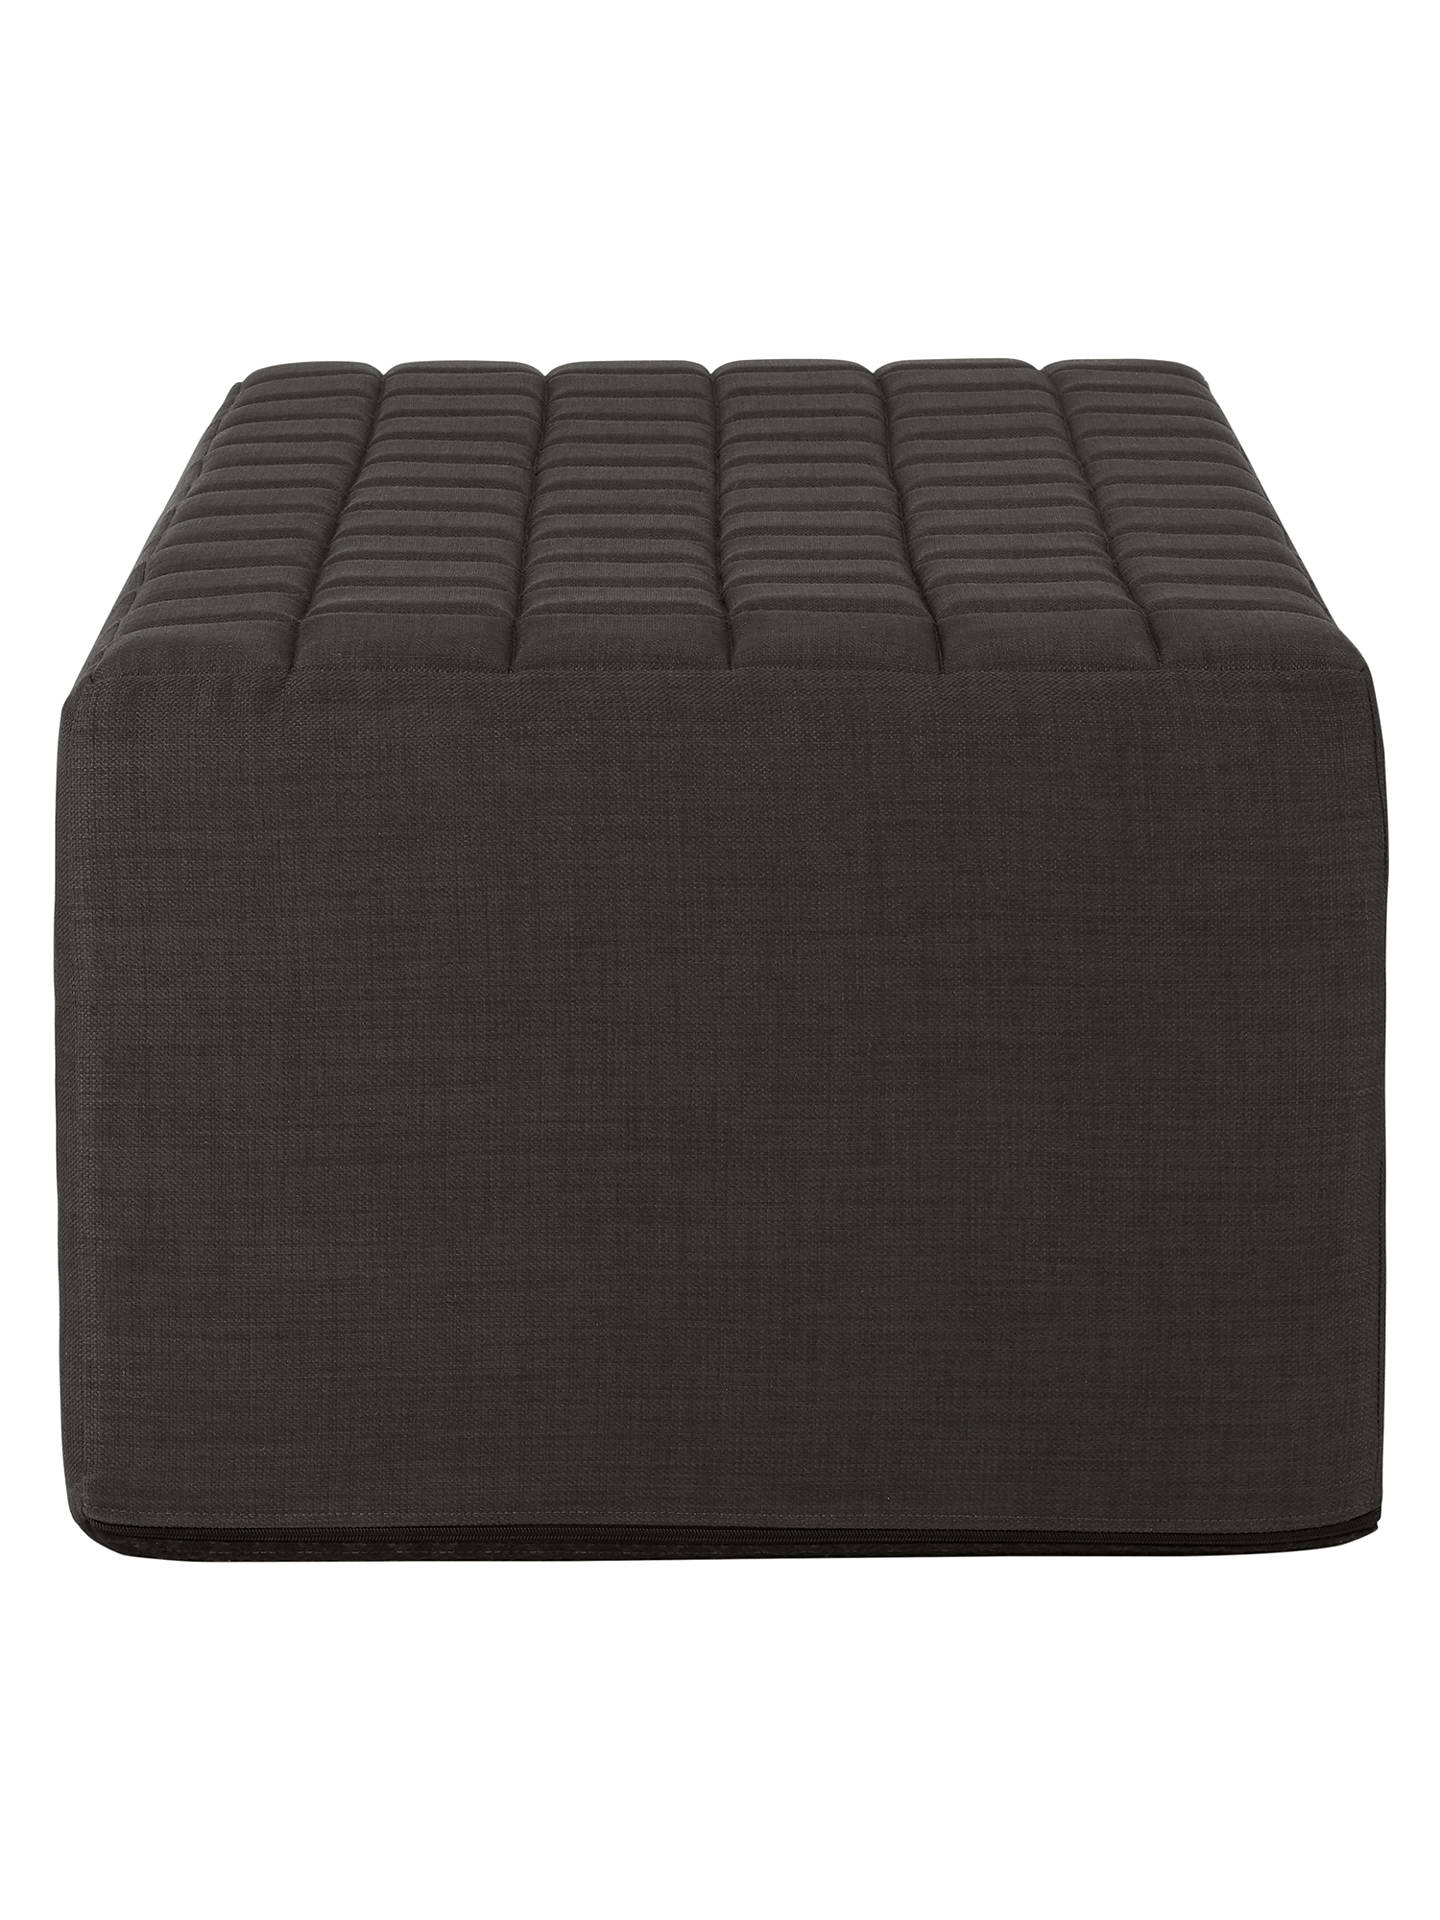 Buy House by John Lewis Kix Double Sofa Bed with Foam Mattress, Fraser Charcoal Online at johnlewis.com